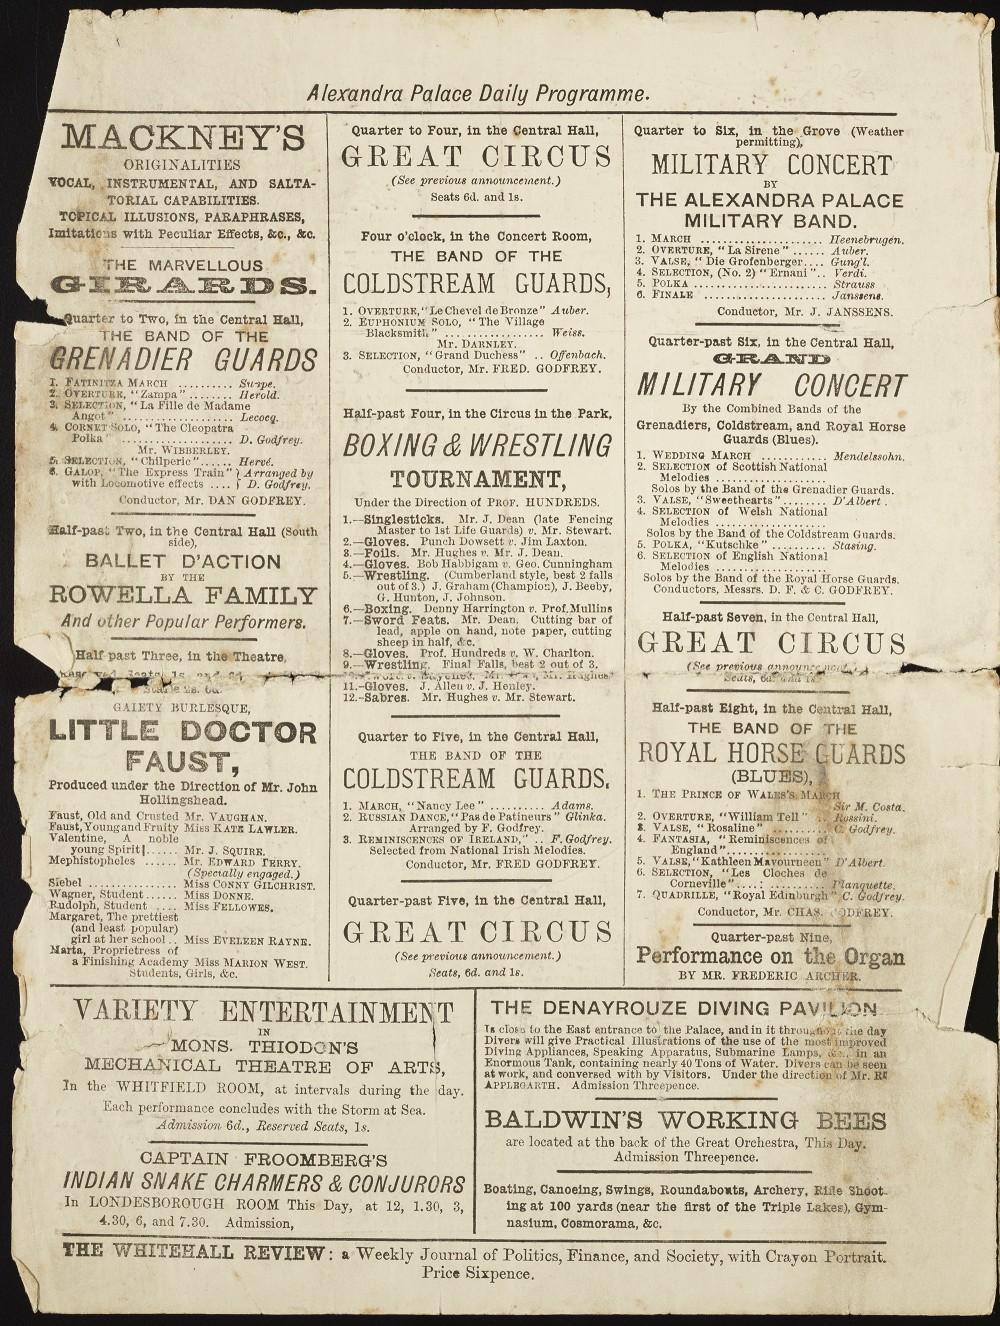 Alexandra Palace Programme, April 22nd 1878